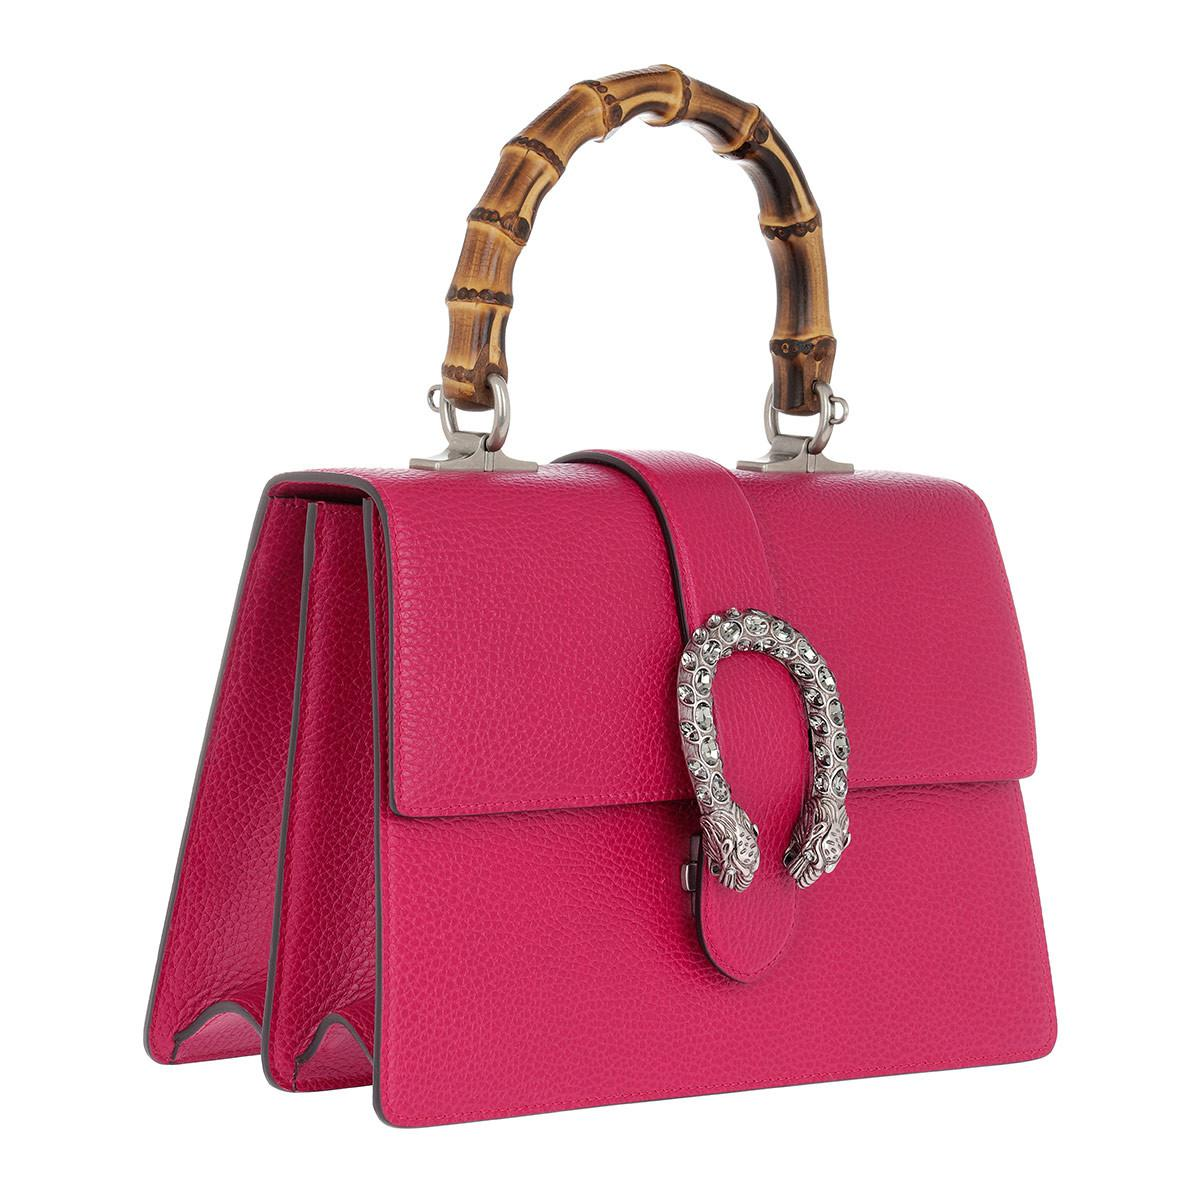 5e56c9074 Gallery. Previously sold at: Fashionette · Women's Gucci Dionysus